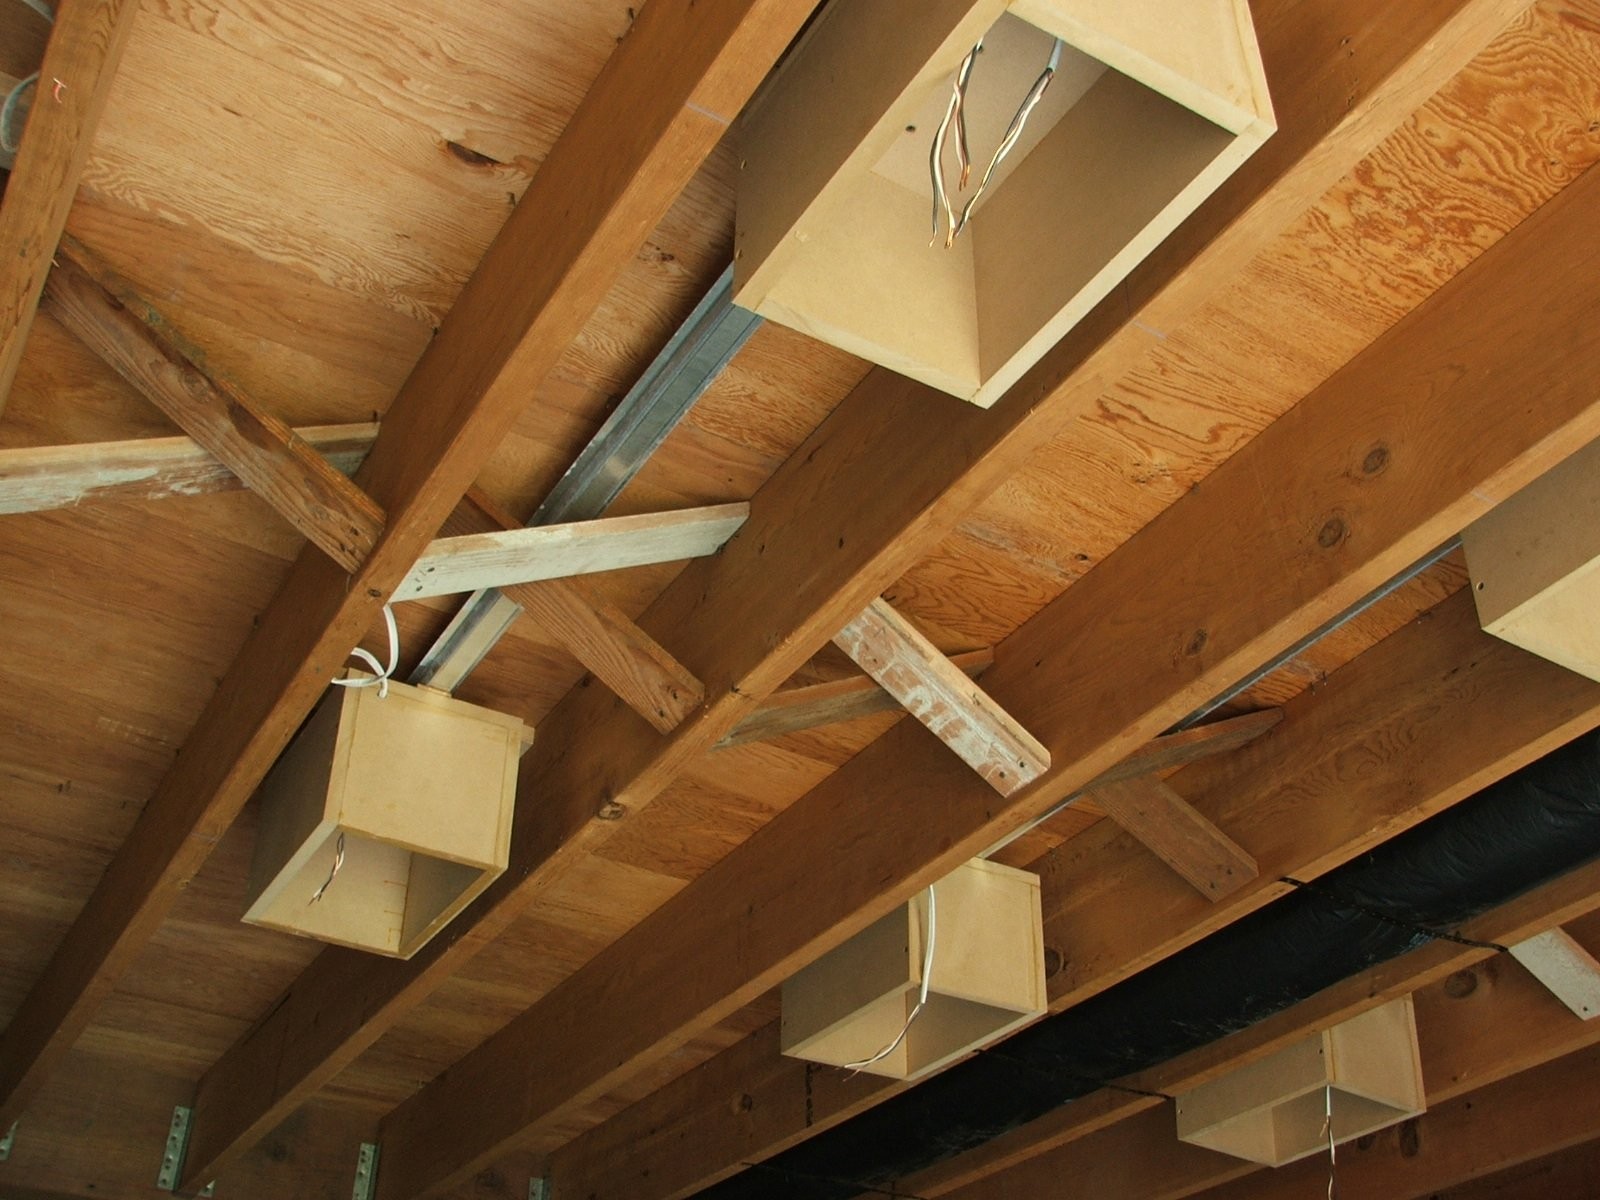 Soundproof Recessed Light Boxes - AVS Forum | Home Theater ...